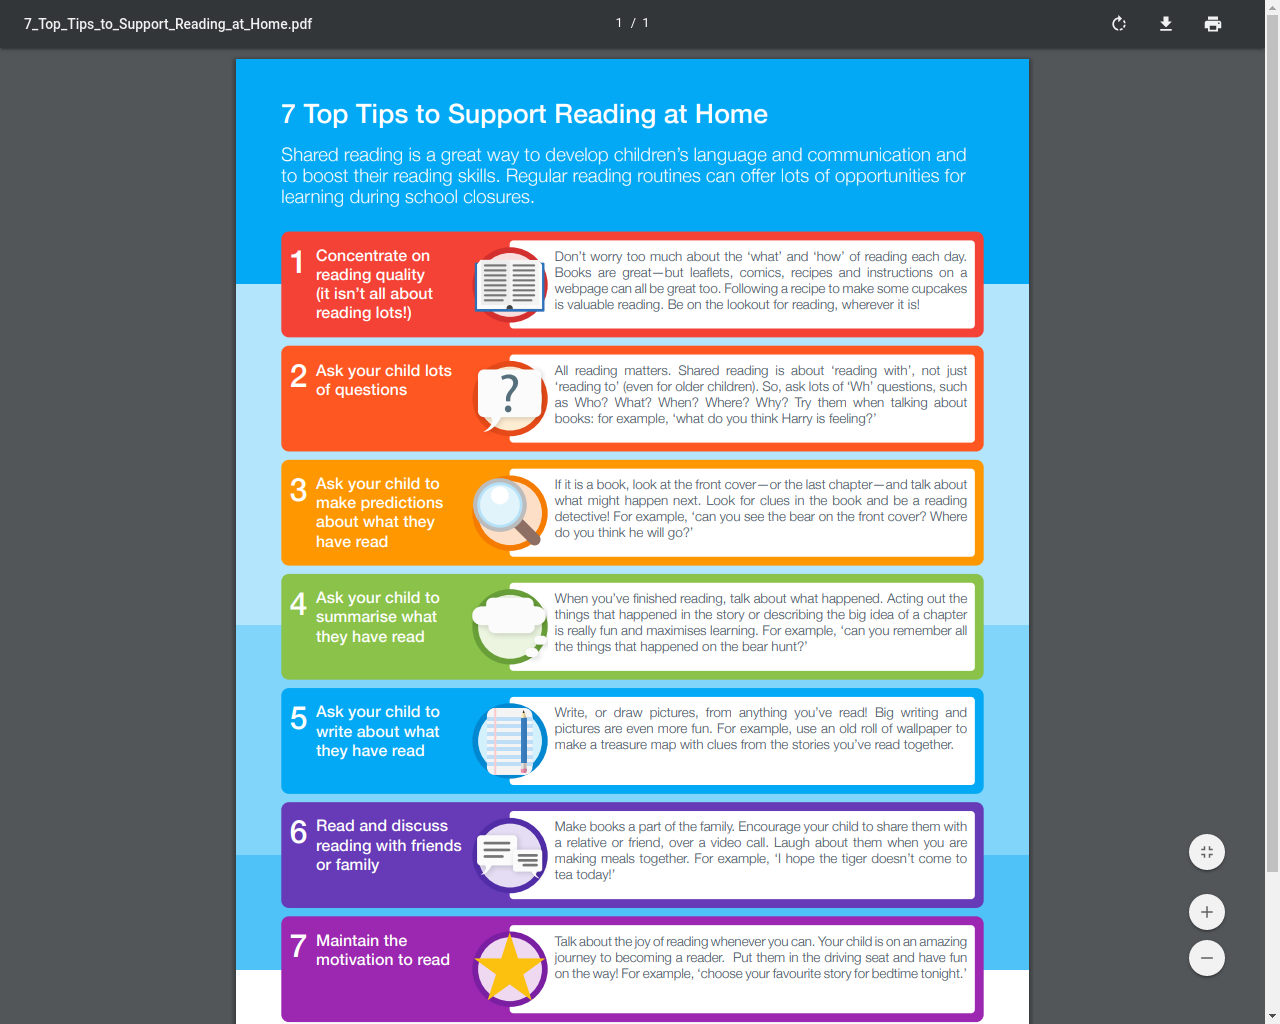 Top tips for supporting reading at home